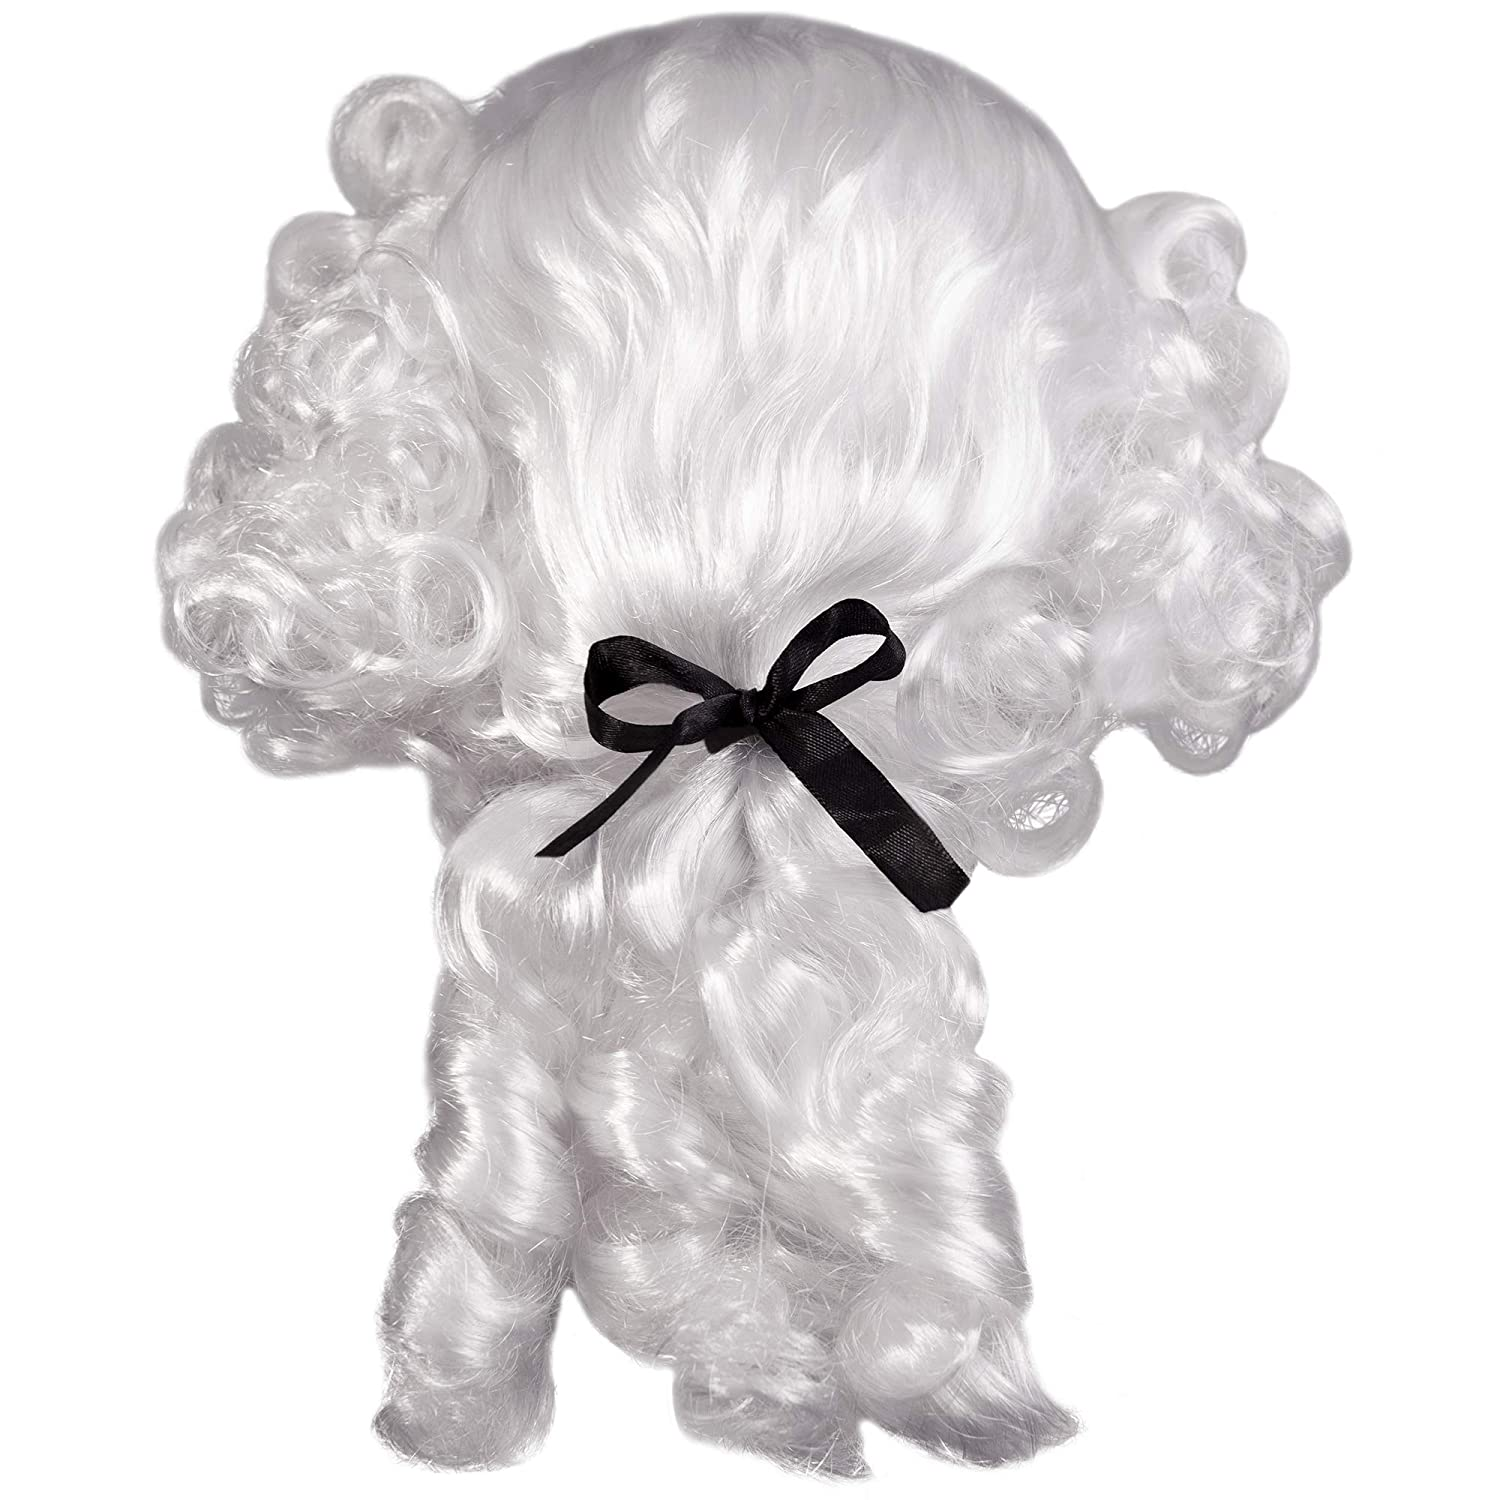 Headwear Funny Adults Hats Colonial Powdered Wig Plays Curly White Hair with Ponytail for Costumes Props for Halloween Adult Size Wigs Projects Dress Up Accessories One Size